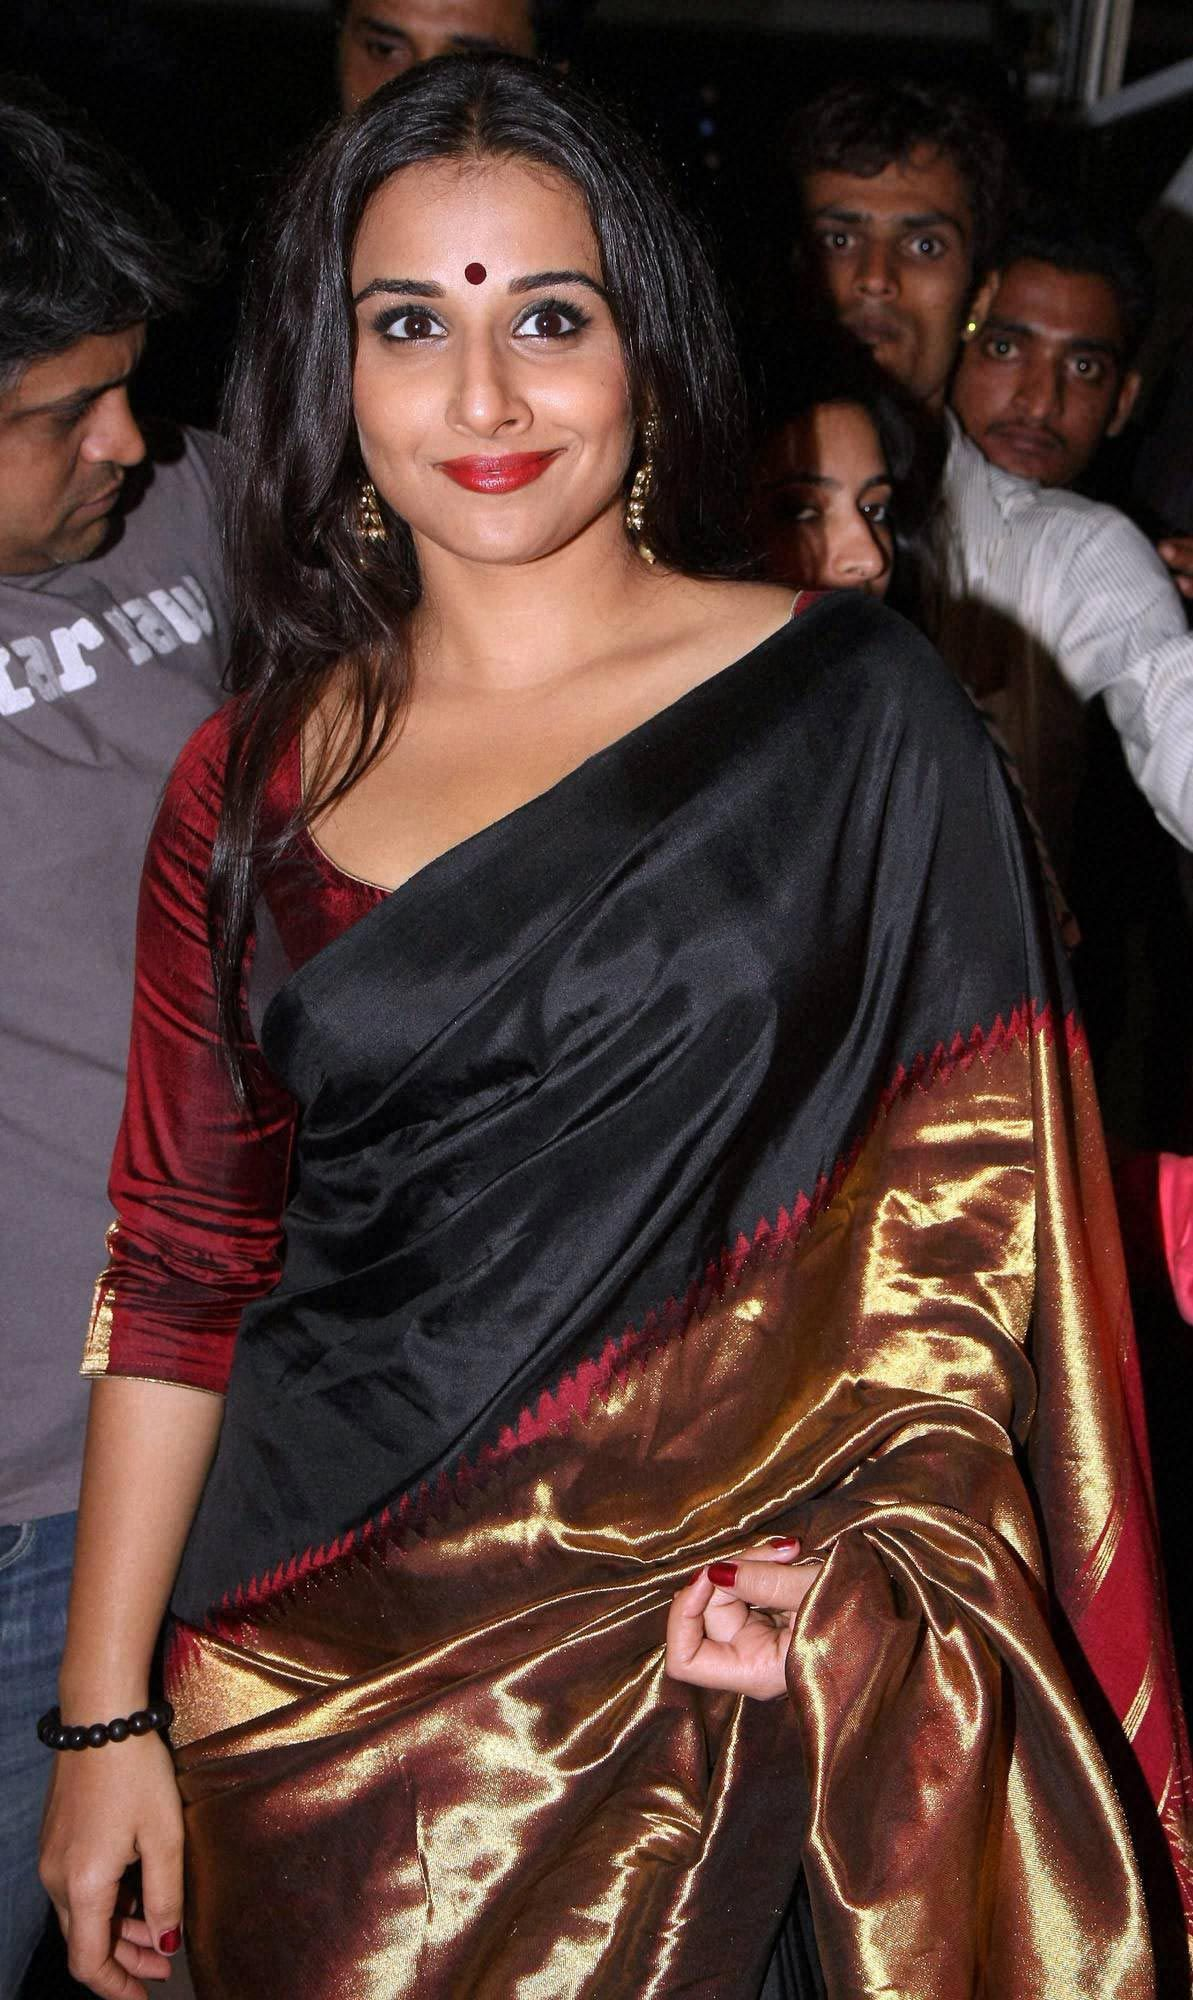 6b0a72b840e31a Vidya Balan, one of the most beautiful women , if not THE most beautiful  and talented woman bollywood has.